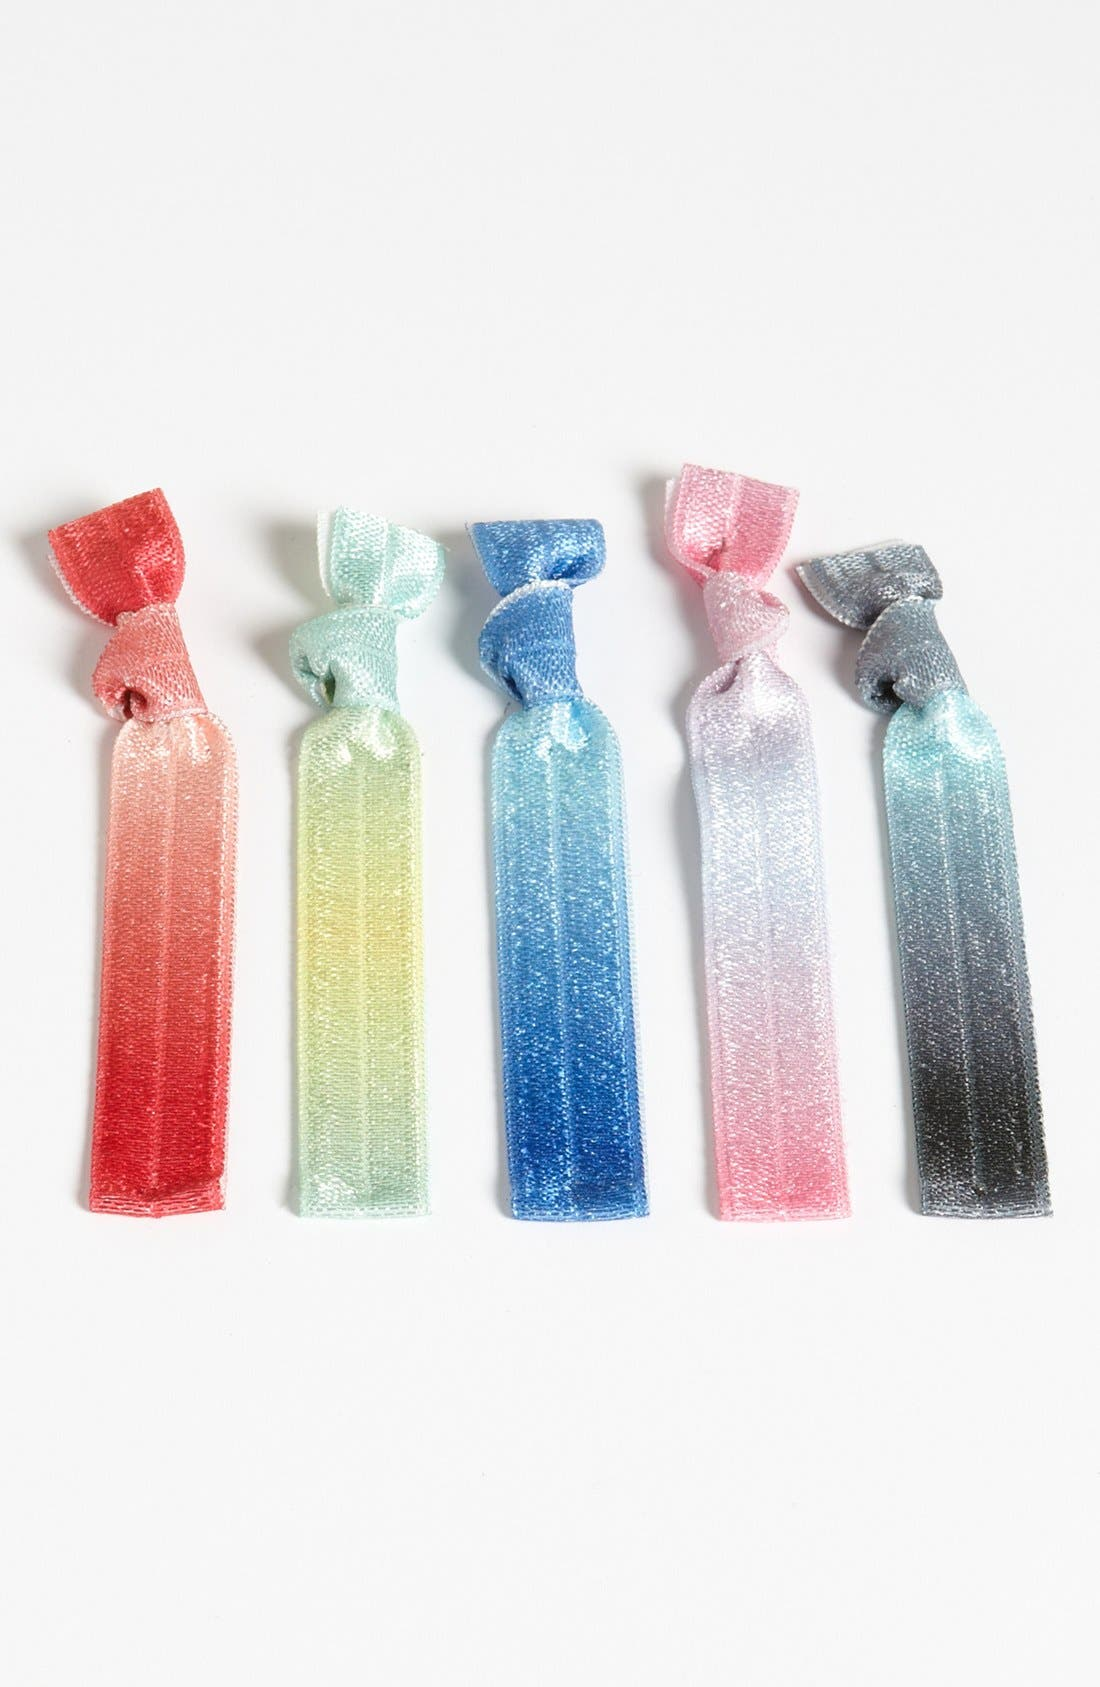 Main Image - Kitsch Hair Ties (Set of 5) (Girls)